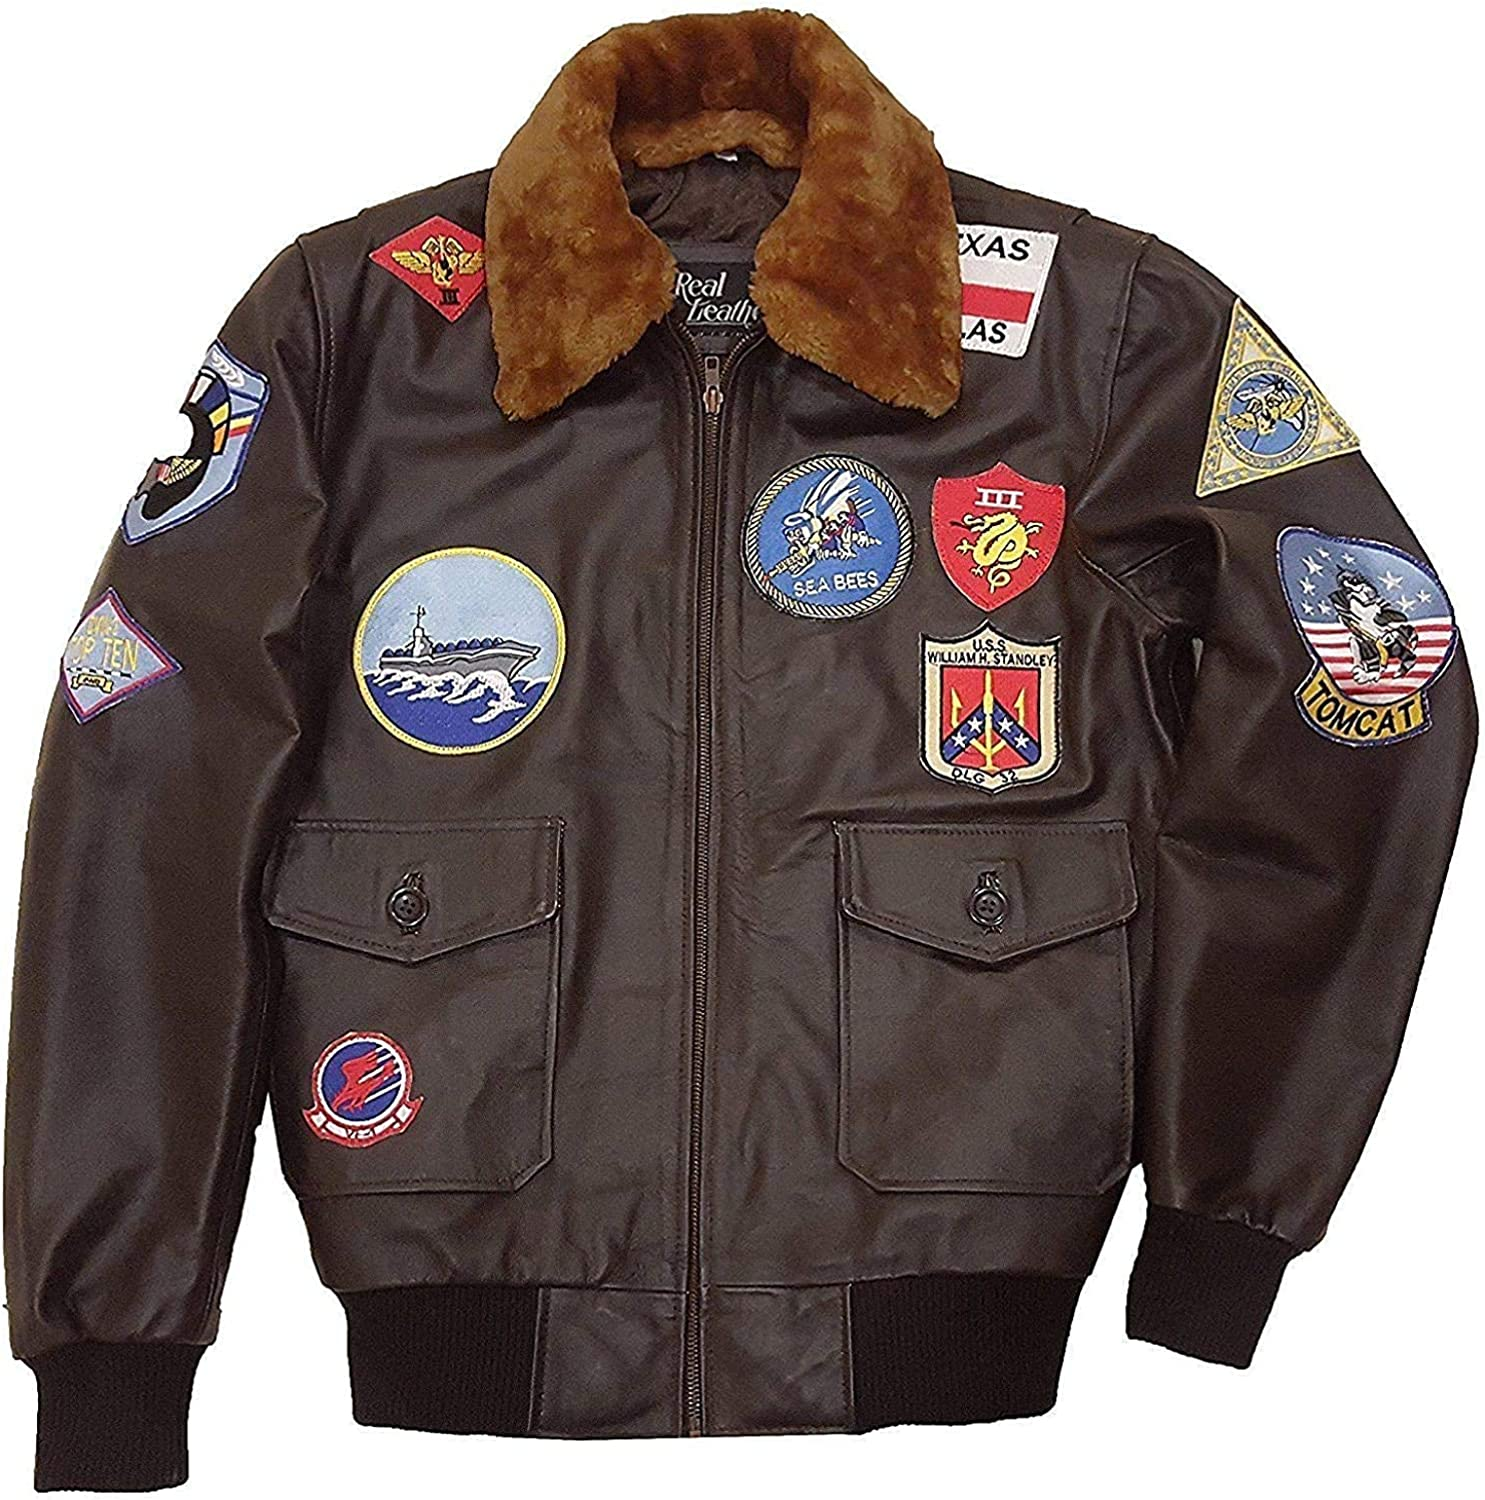 Mens Top Aviator USAAF Pilot Flying Tom Cruise Multiple Patches G1 Fur Collar Brown Bomber Leather Jacket